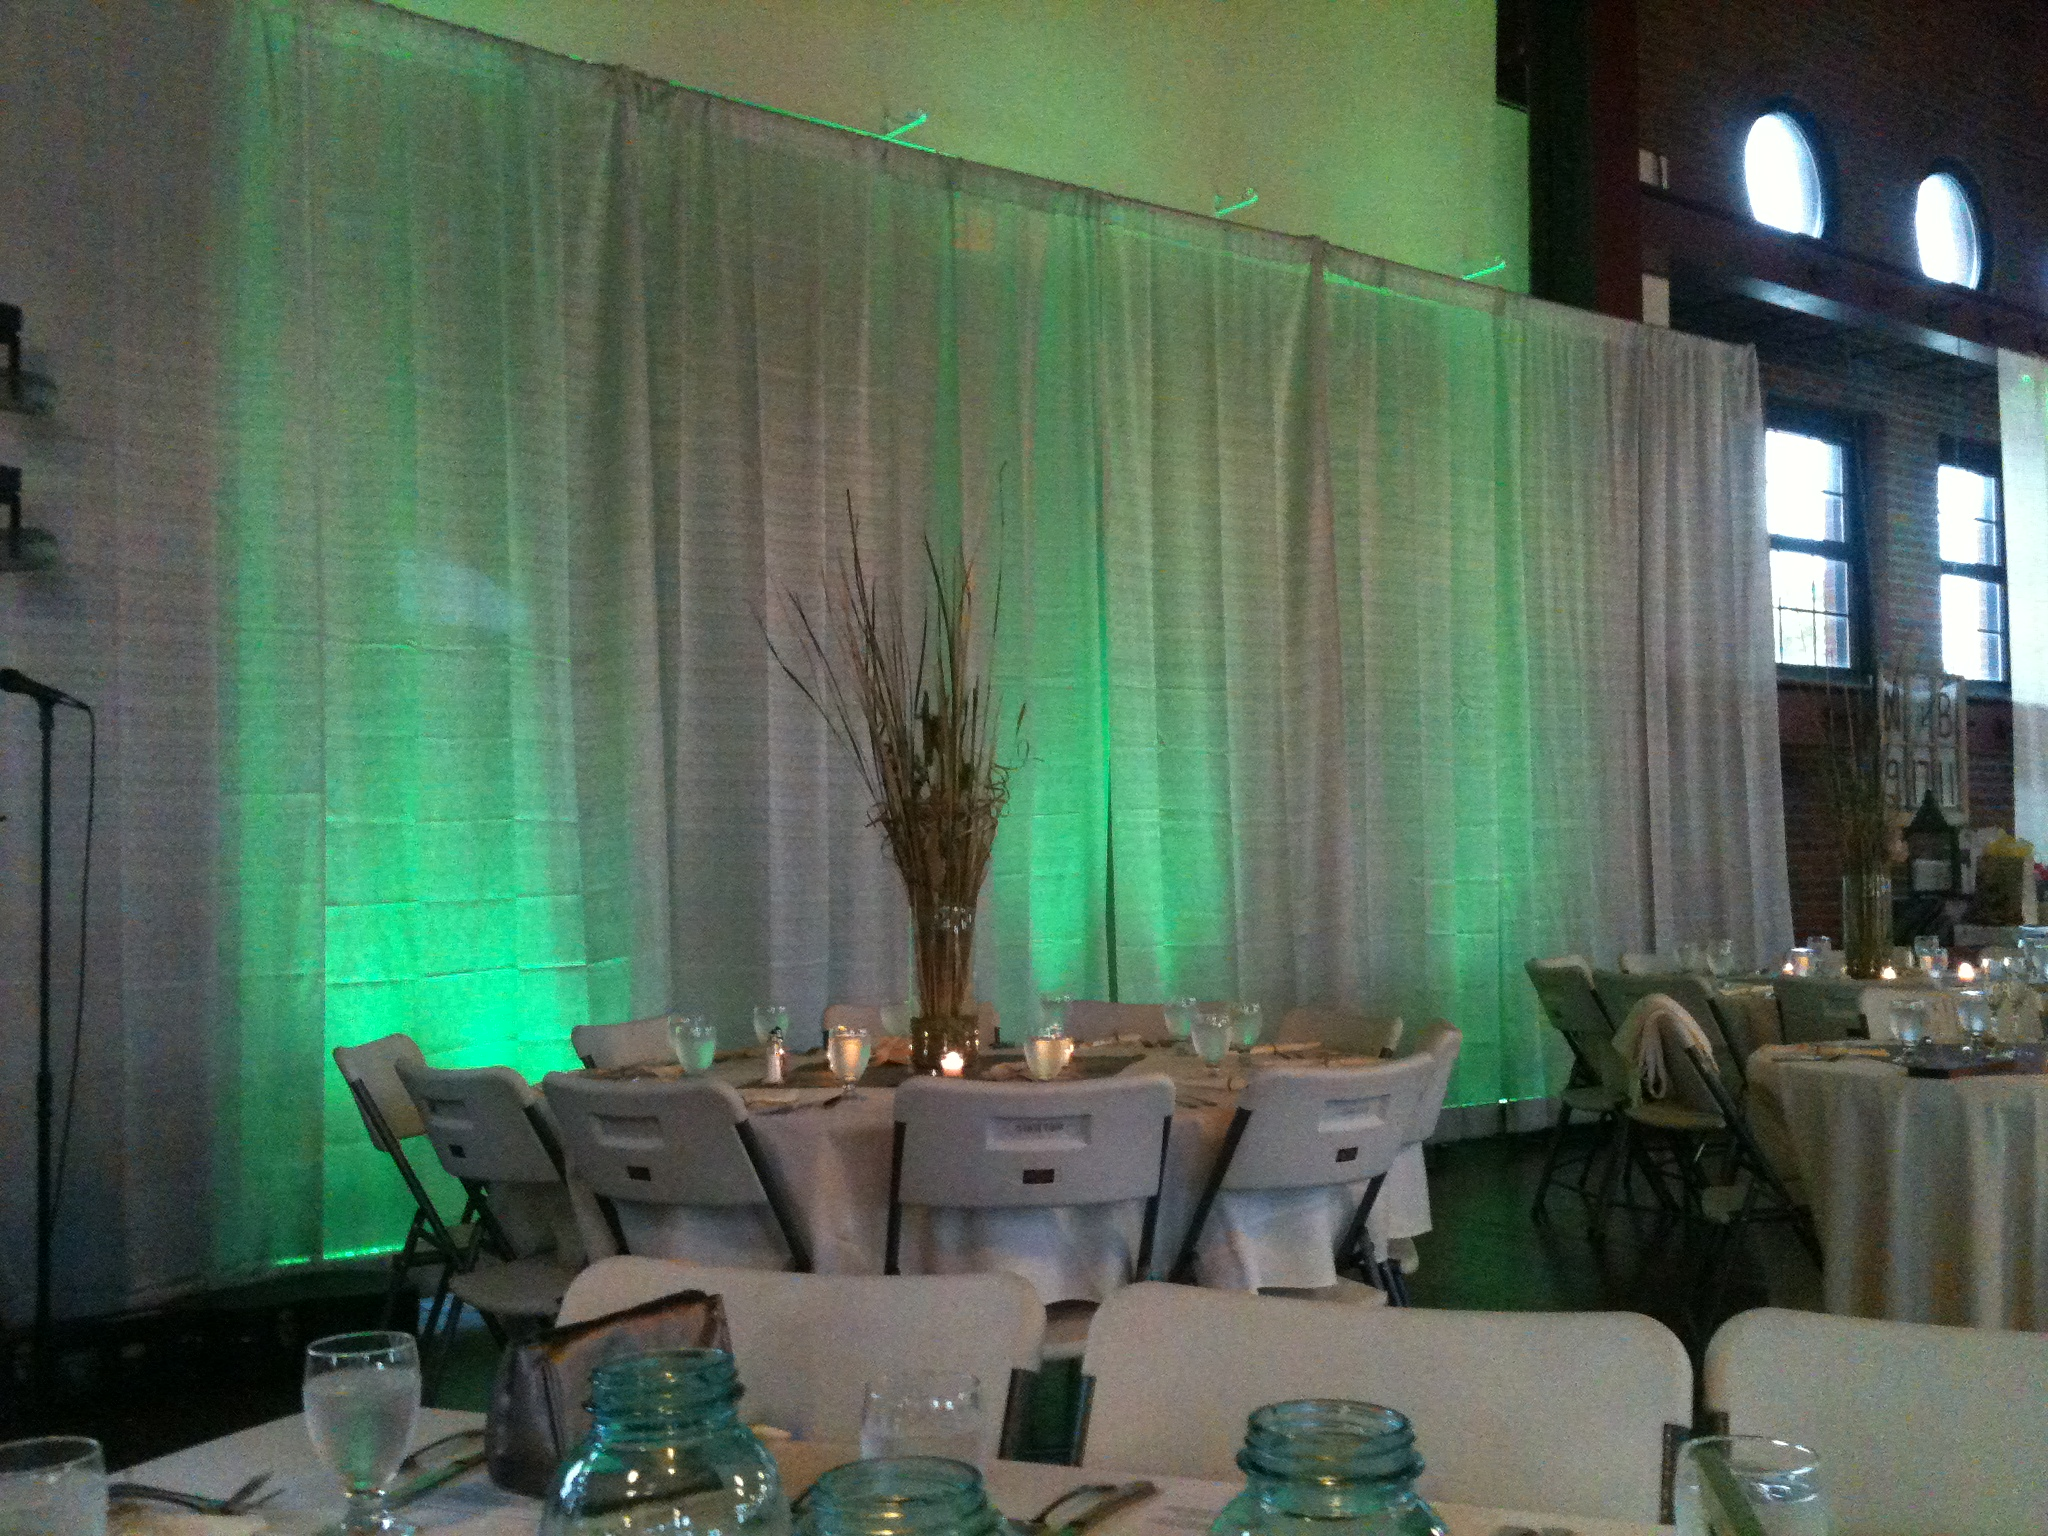 Central illinois wedding reception rentals services drape with teal uplights at artisans bldg junglespirit Image collections